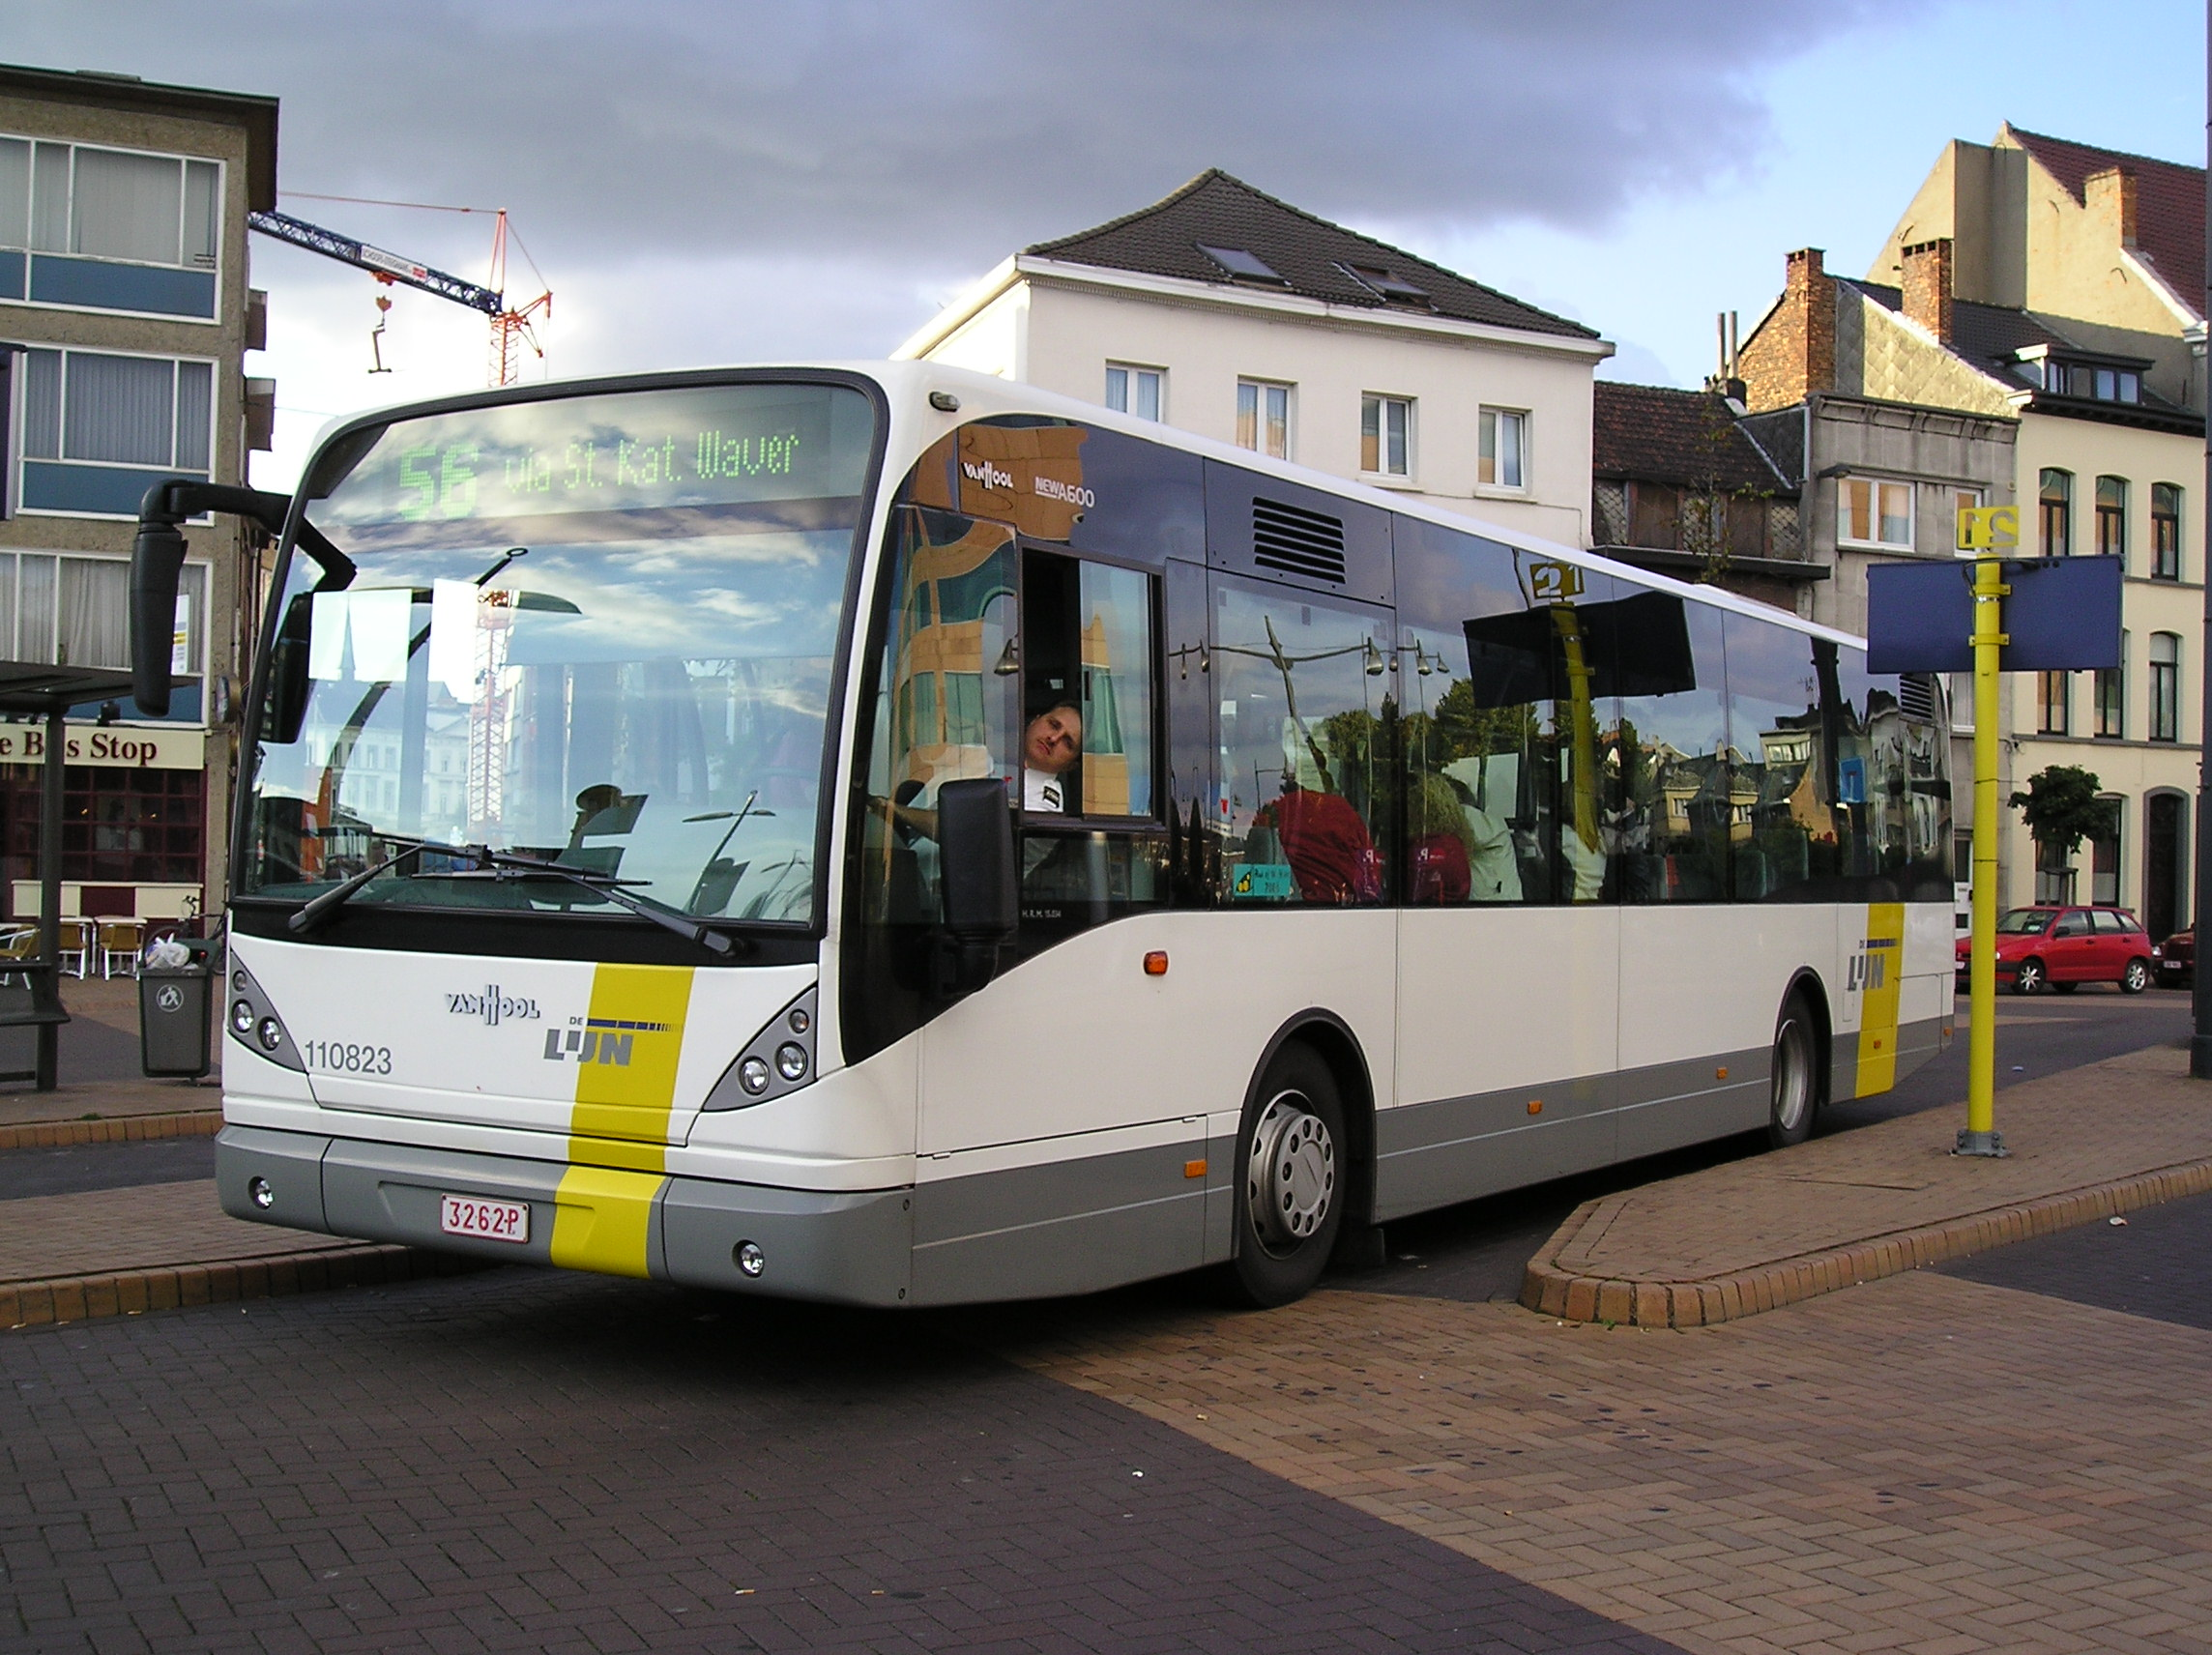 Vanhool bus photo - 1